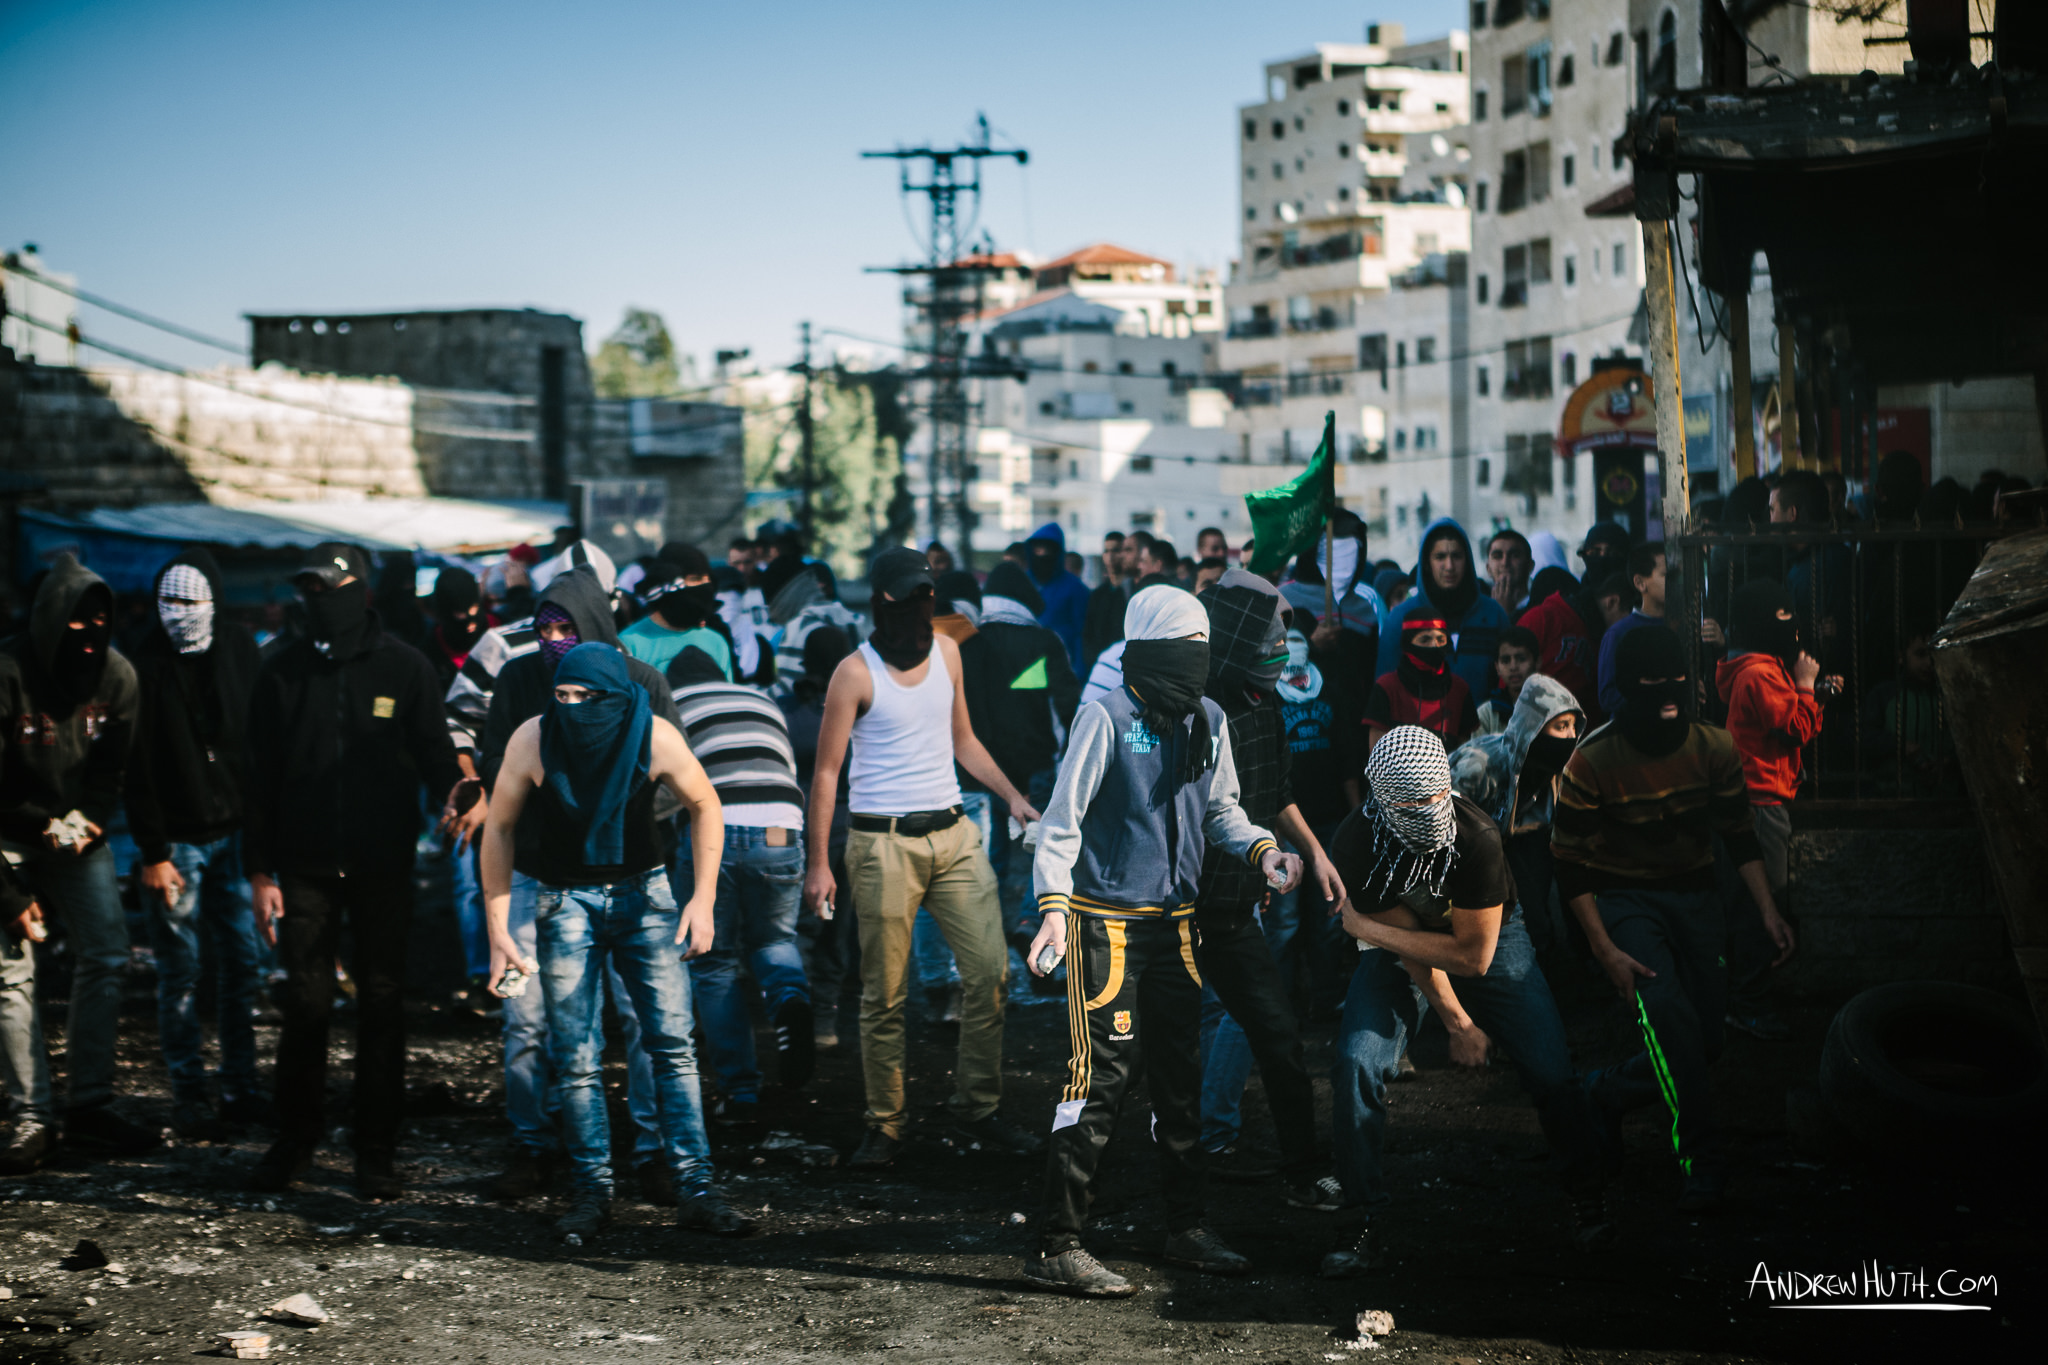 Palestinian youth clash with Israeli military in Shu'afat Refugee Camp in East Jerusalem on Friday, November 7, 2014. The recent, but temporarily total closure of one of Muslim's holiest sites, the Al-Aqsa Mosque, (the first since 1967) and the subsequent limited access for many Muslims to the mosque since has raised tension between Israeli's military and the Arab community.